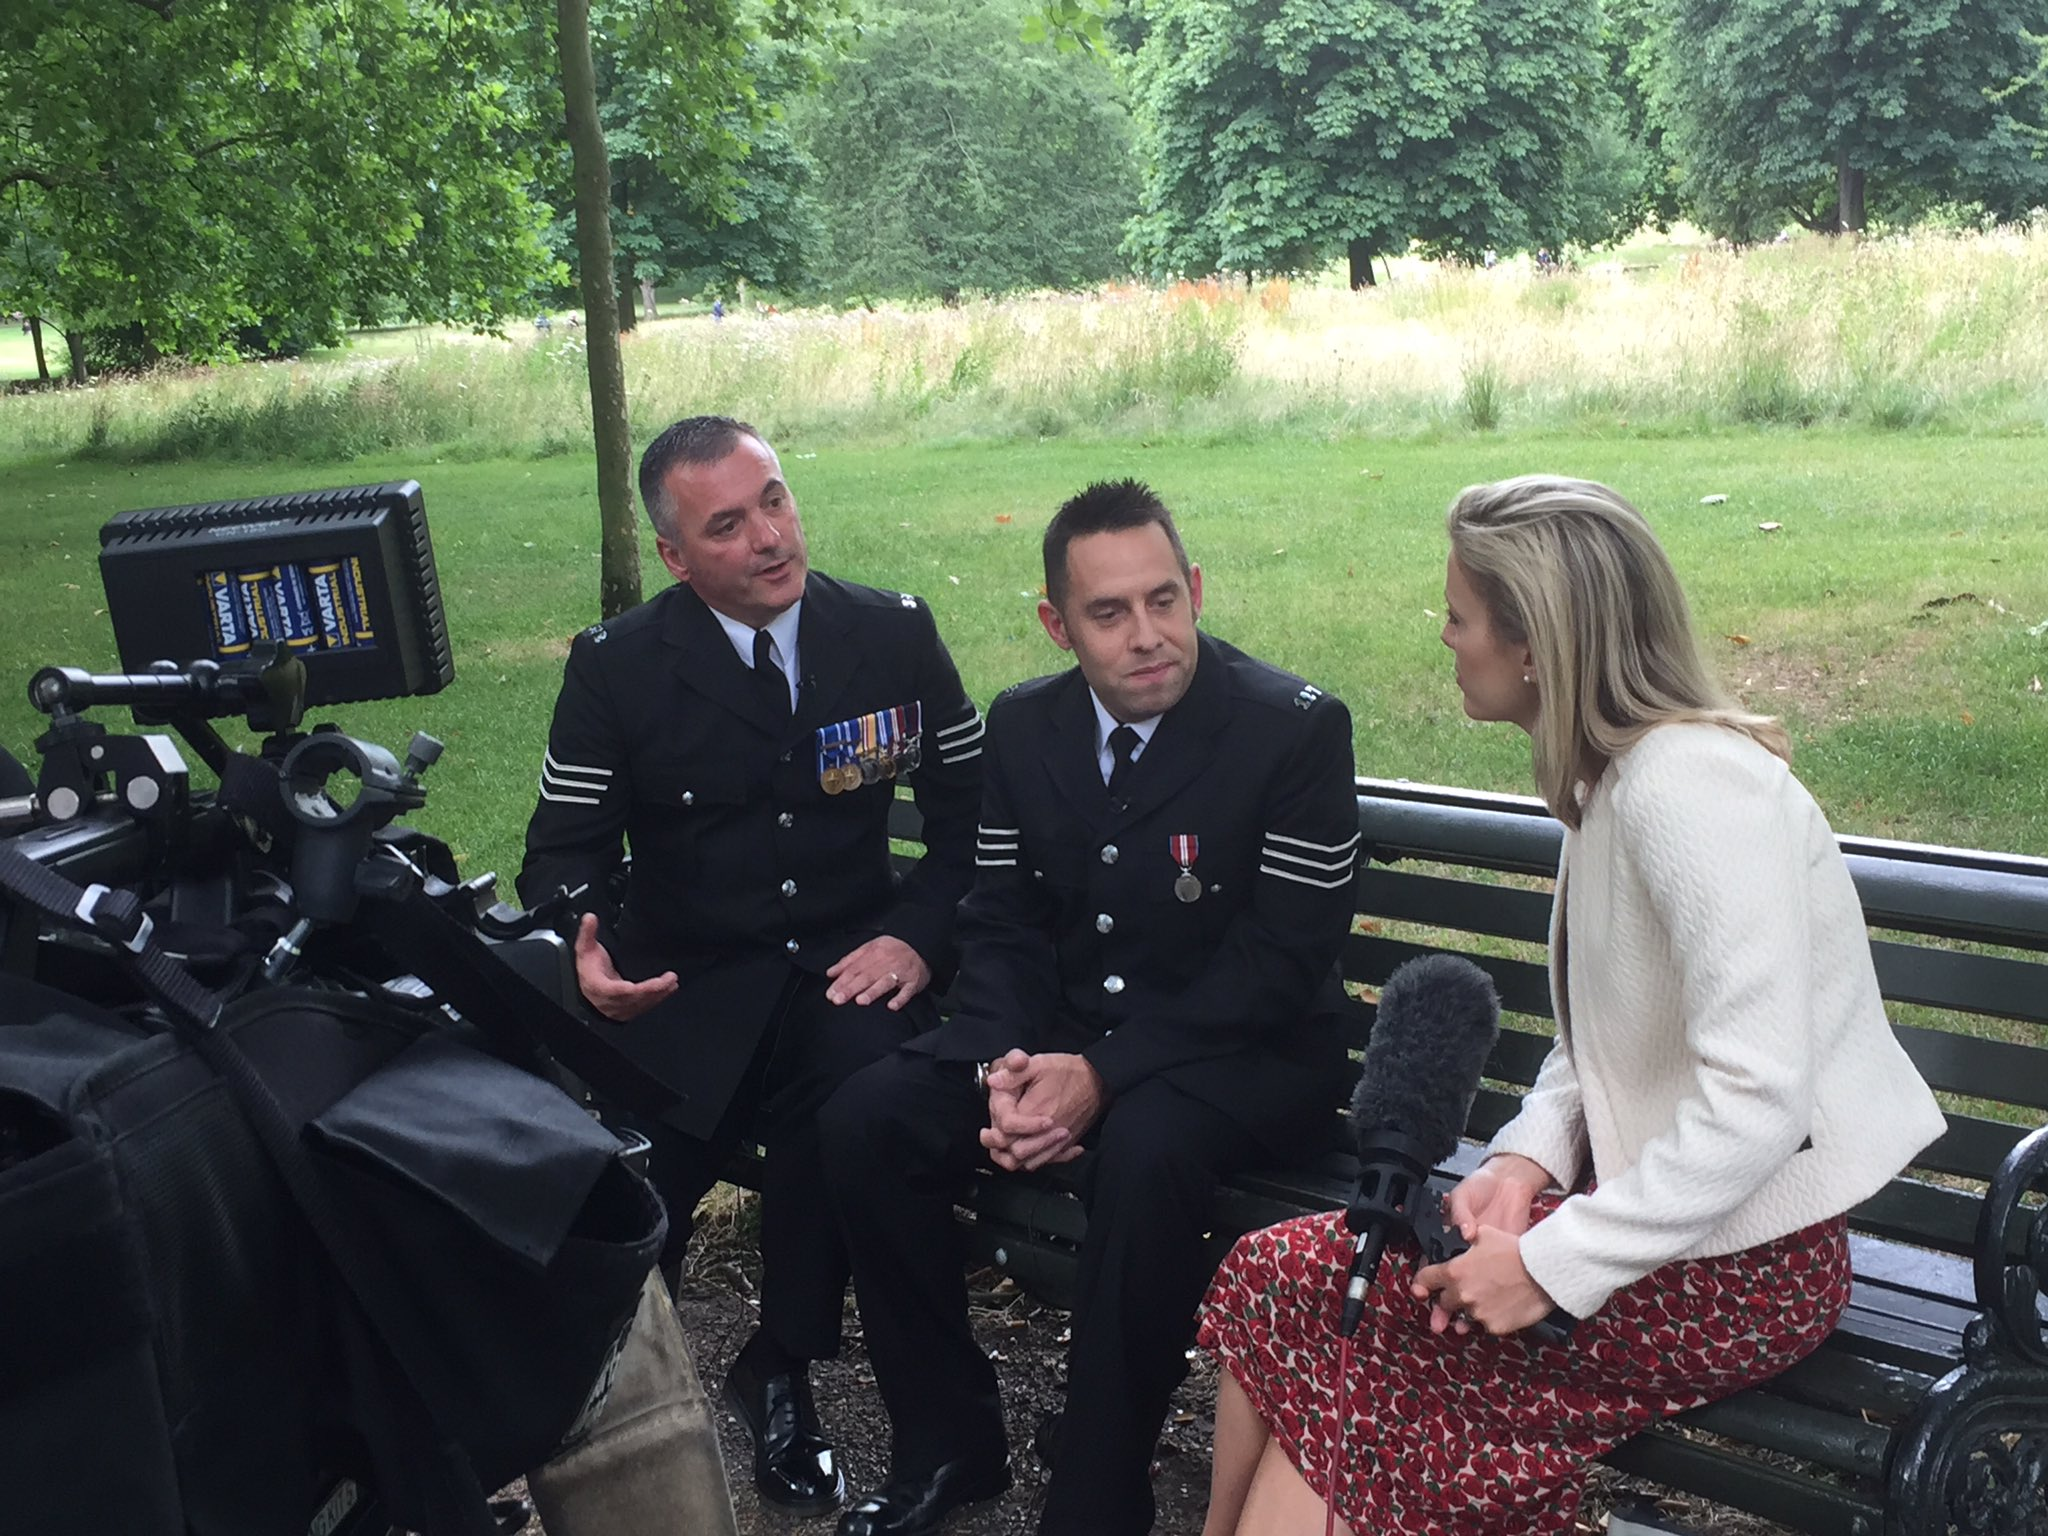 Watch out for #PoliceBravery nominees Sgts Iain McIvor & Dave Wilson, from @lincspolice due on @5_News from 5pm tonight https://t.co/xkOKOCDXdP